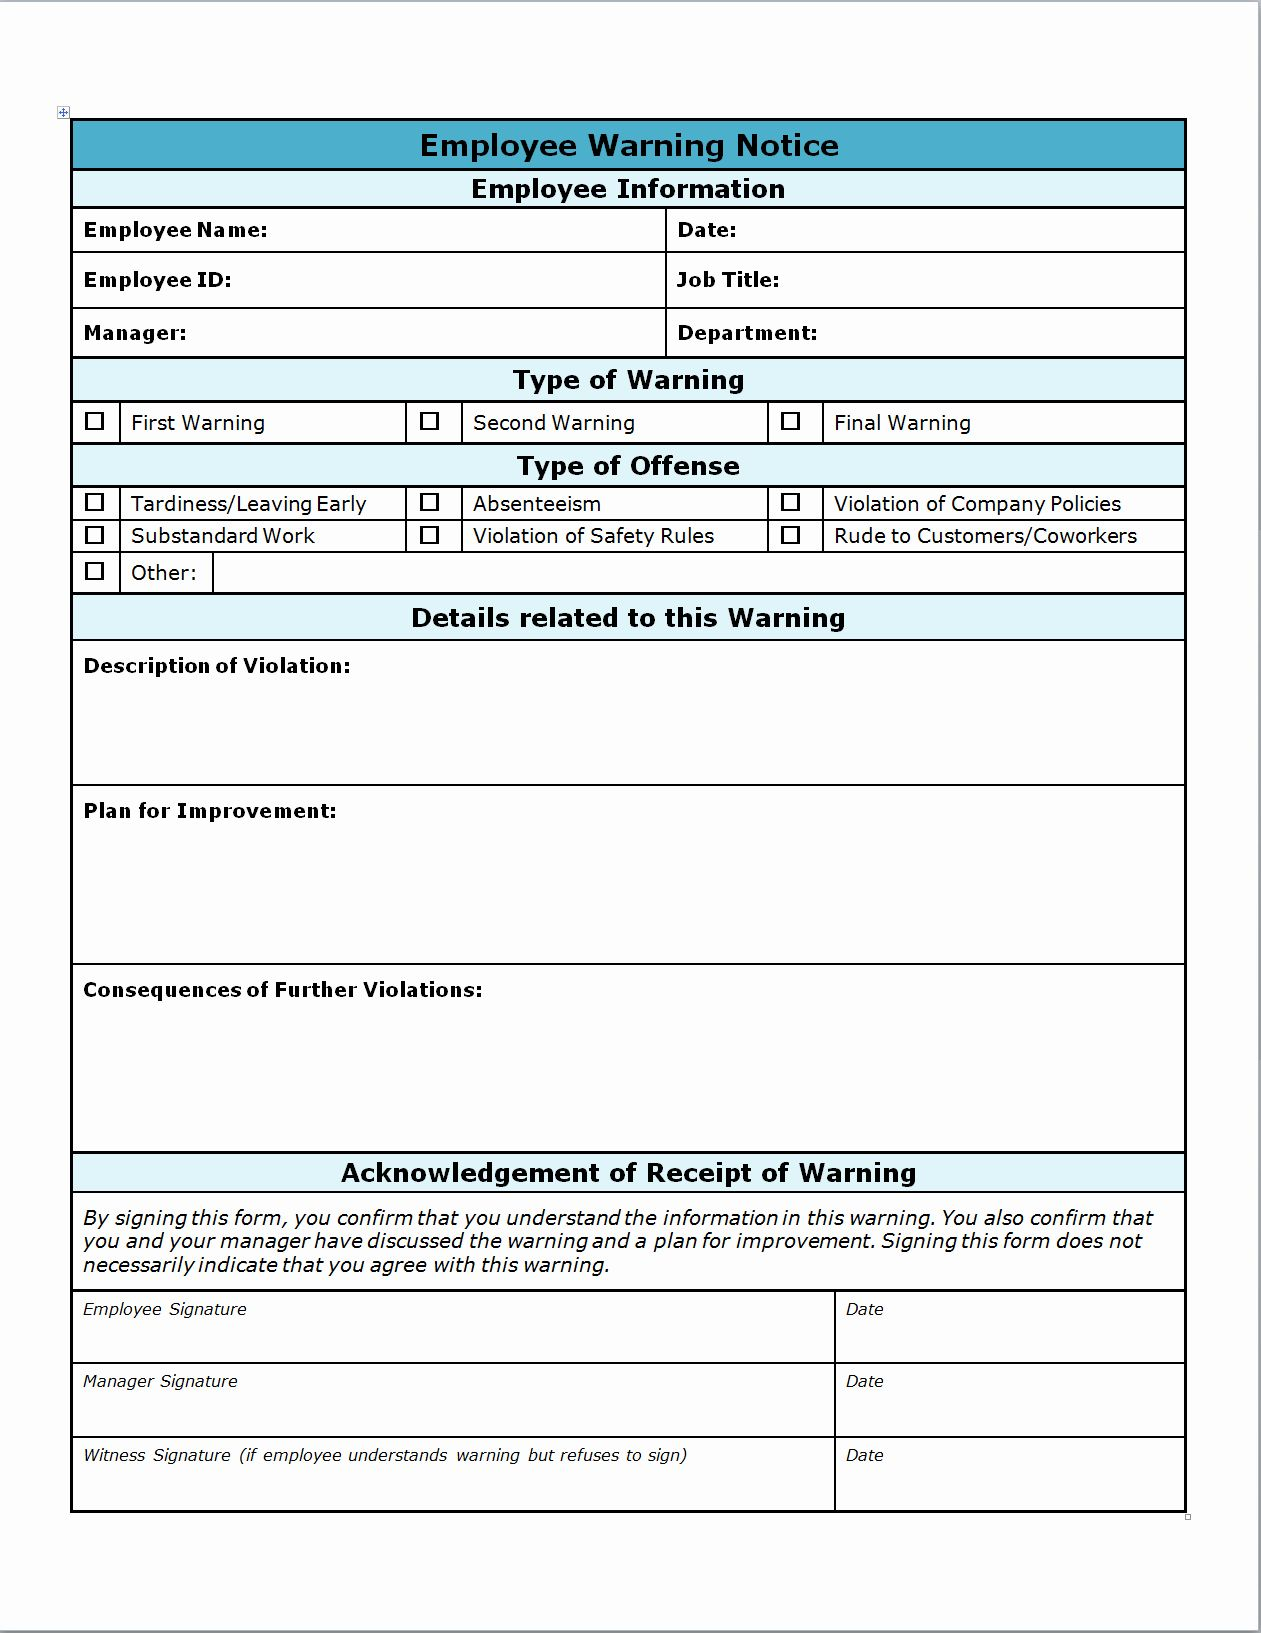 Personnel Action Form Template Excel In 2020 Employee Handbook